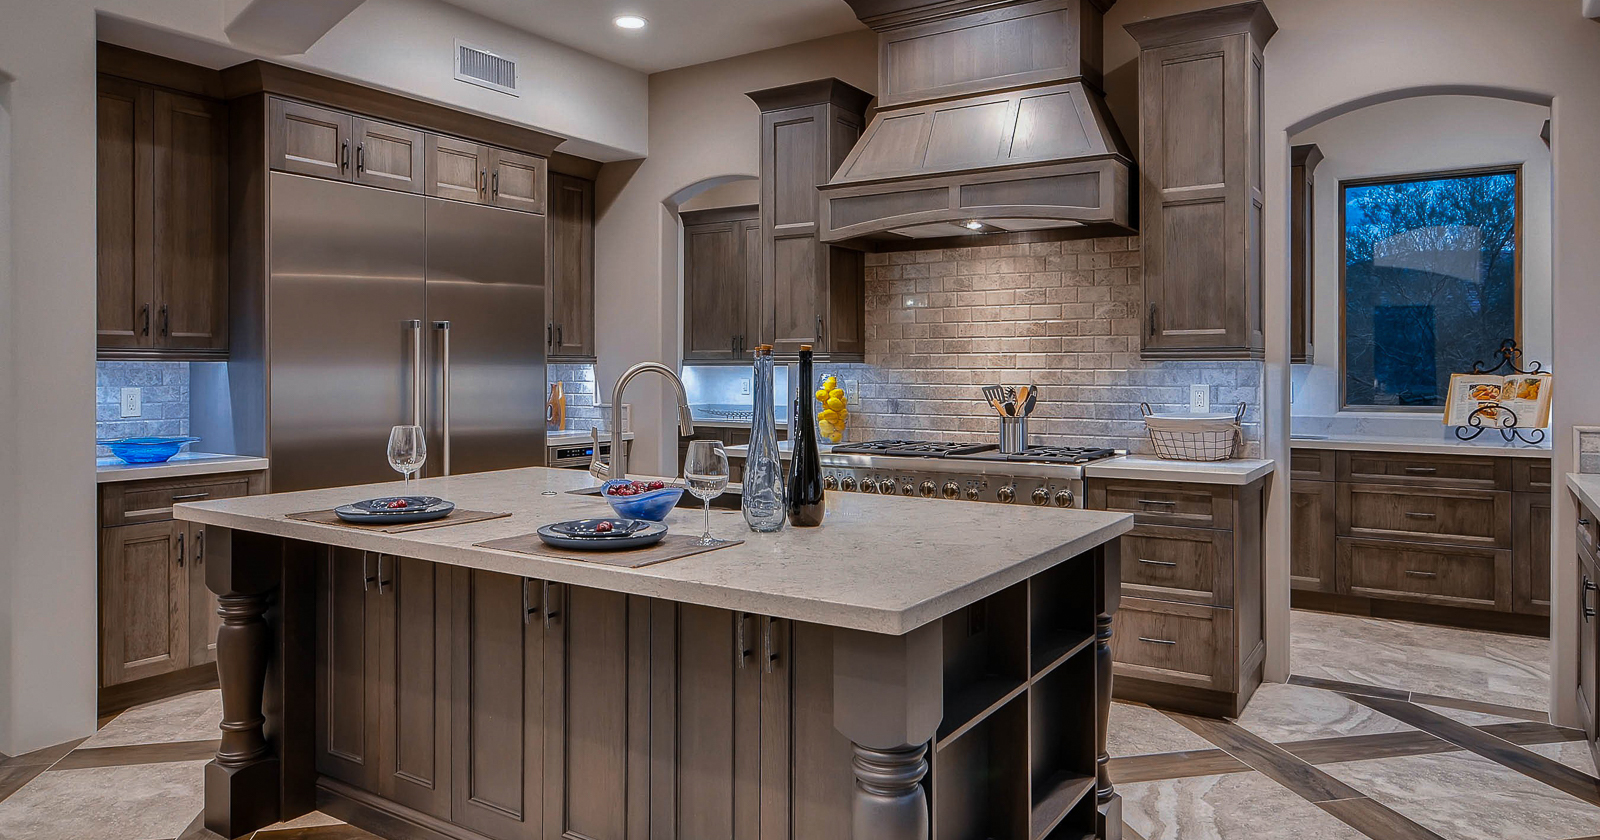 The Sutherland and Savannah door styles are mixed in this gray stained Showplace kitchen